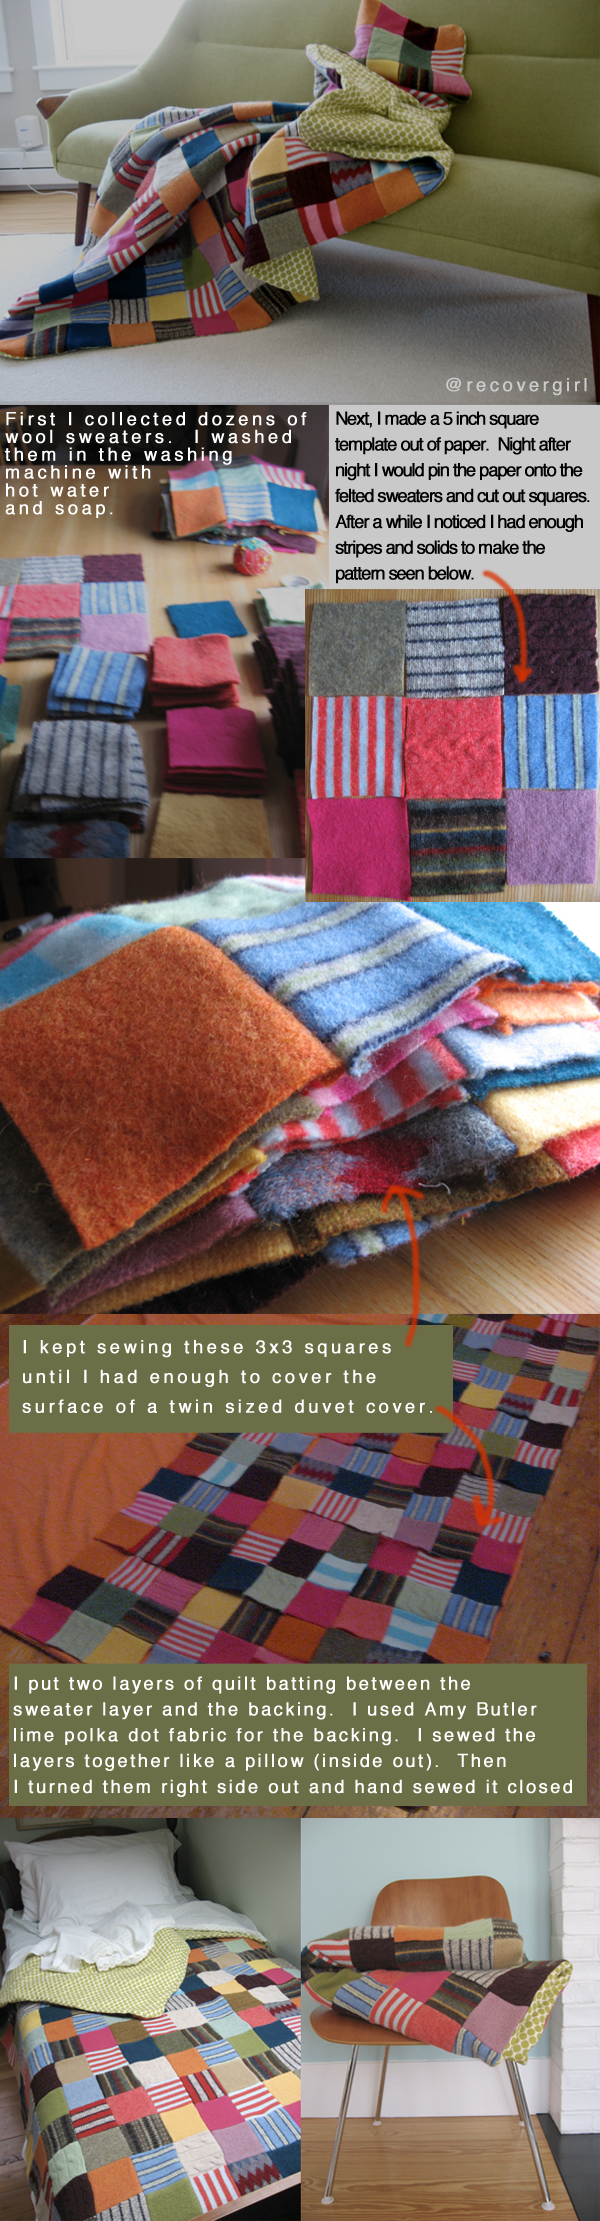 Felted Sweater Blanket Recovergirl